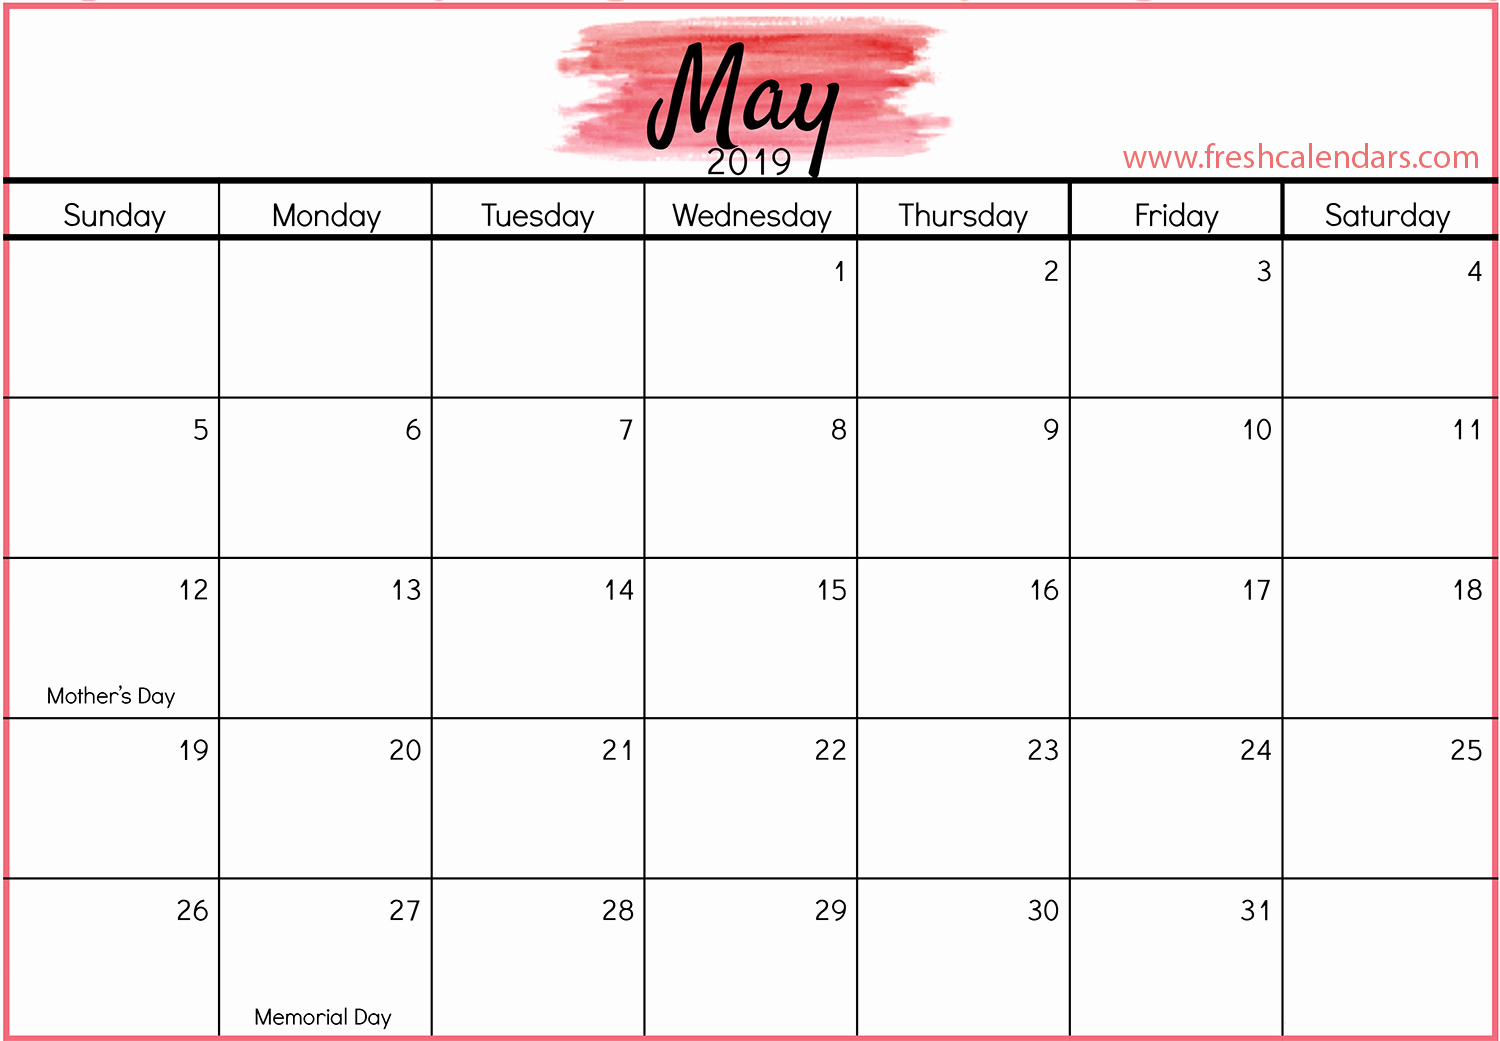 Monthly Calendar Template 2019 Lovely May 2019 Calendar Printable Fresh Calendars